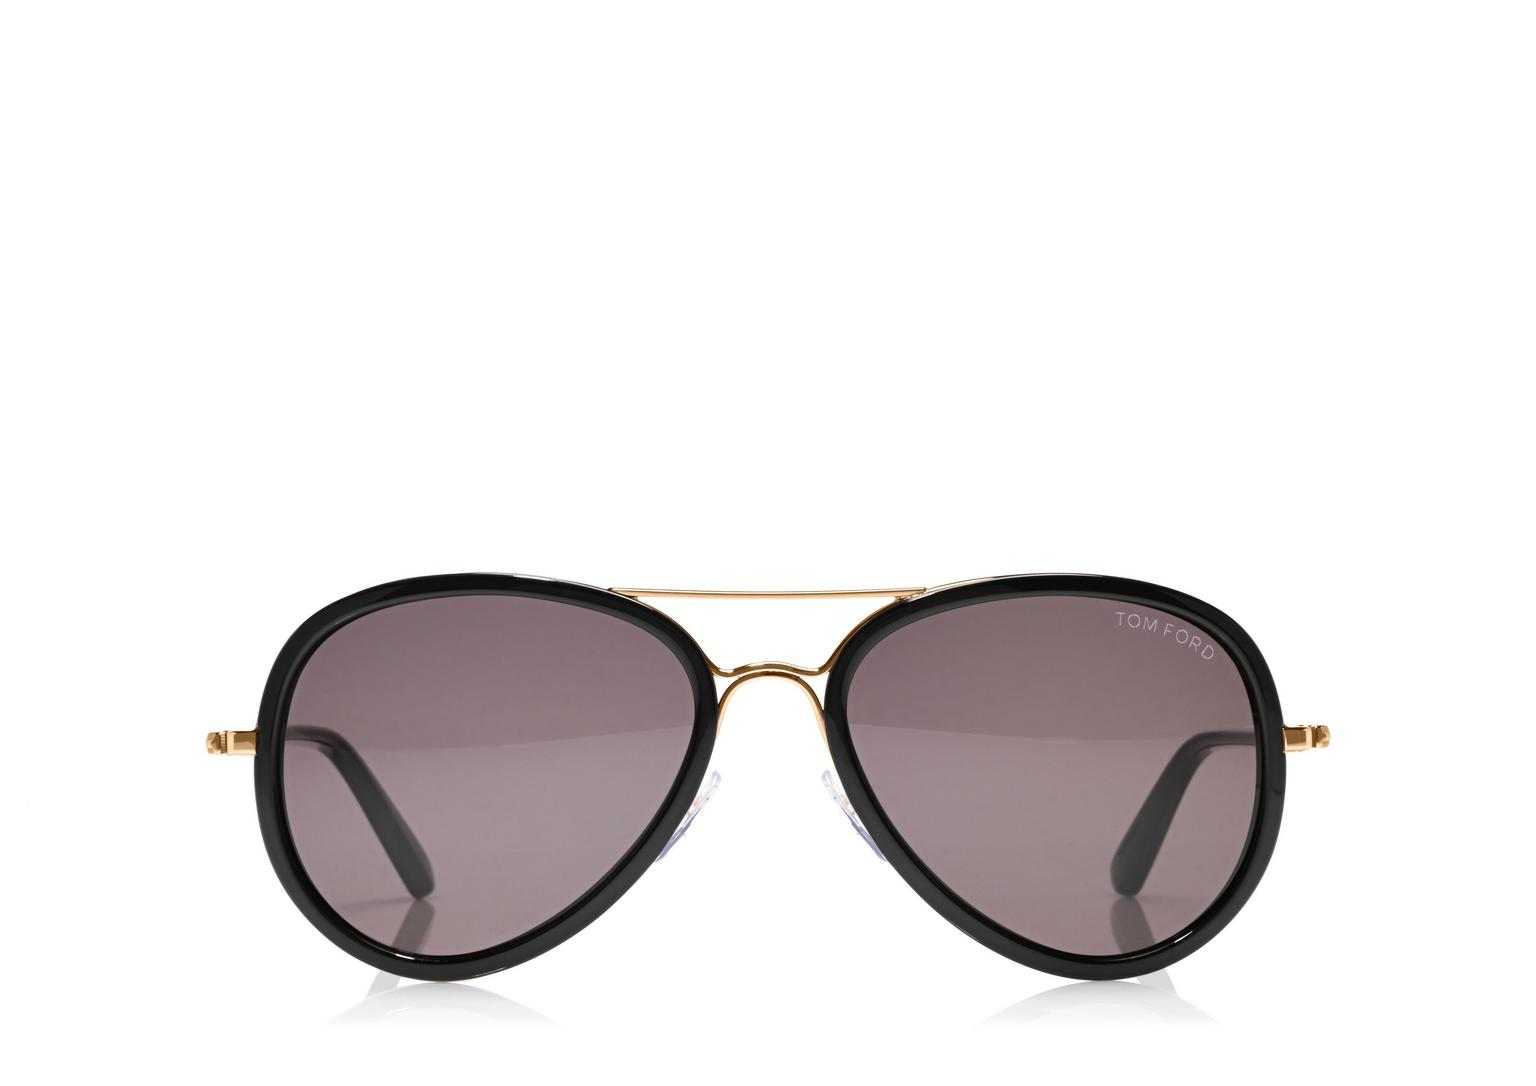 Miles Aviator Sunglasses